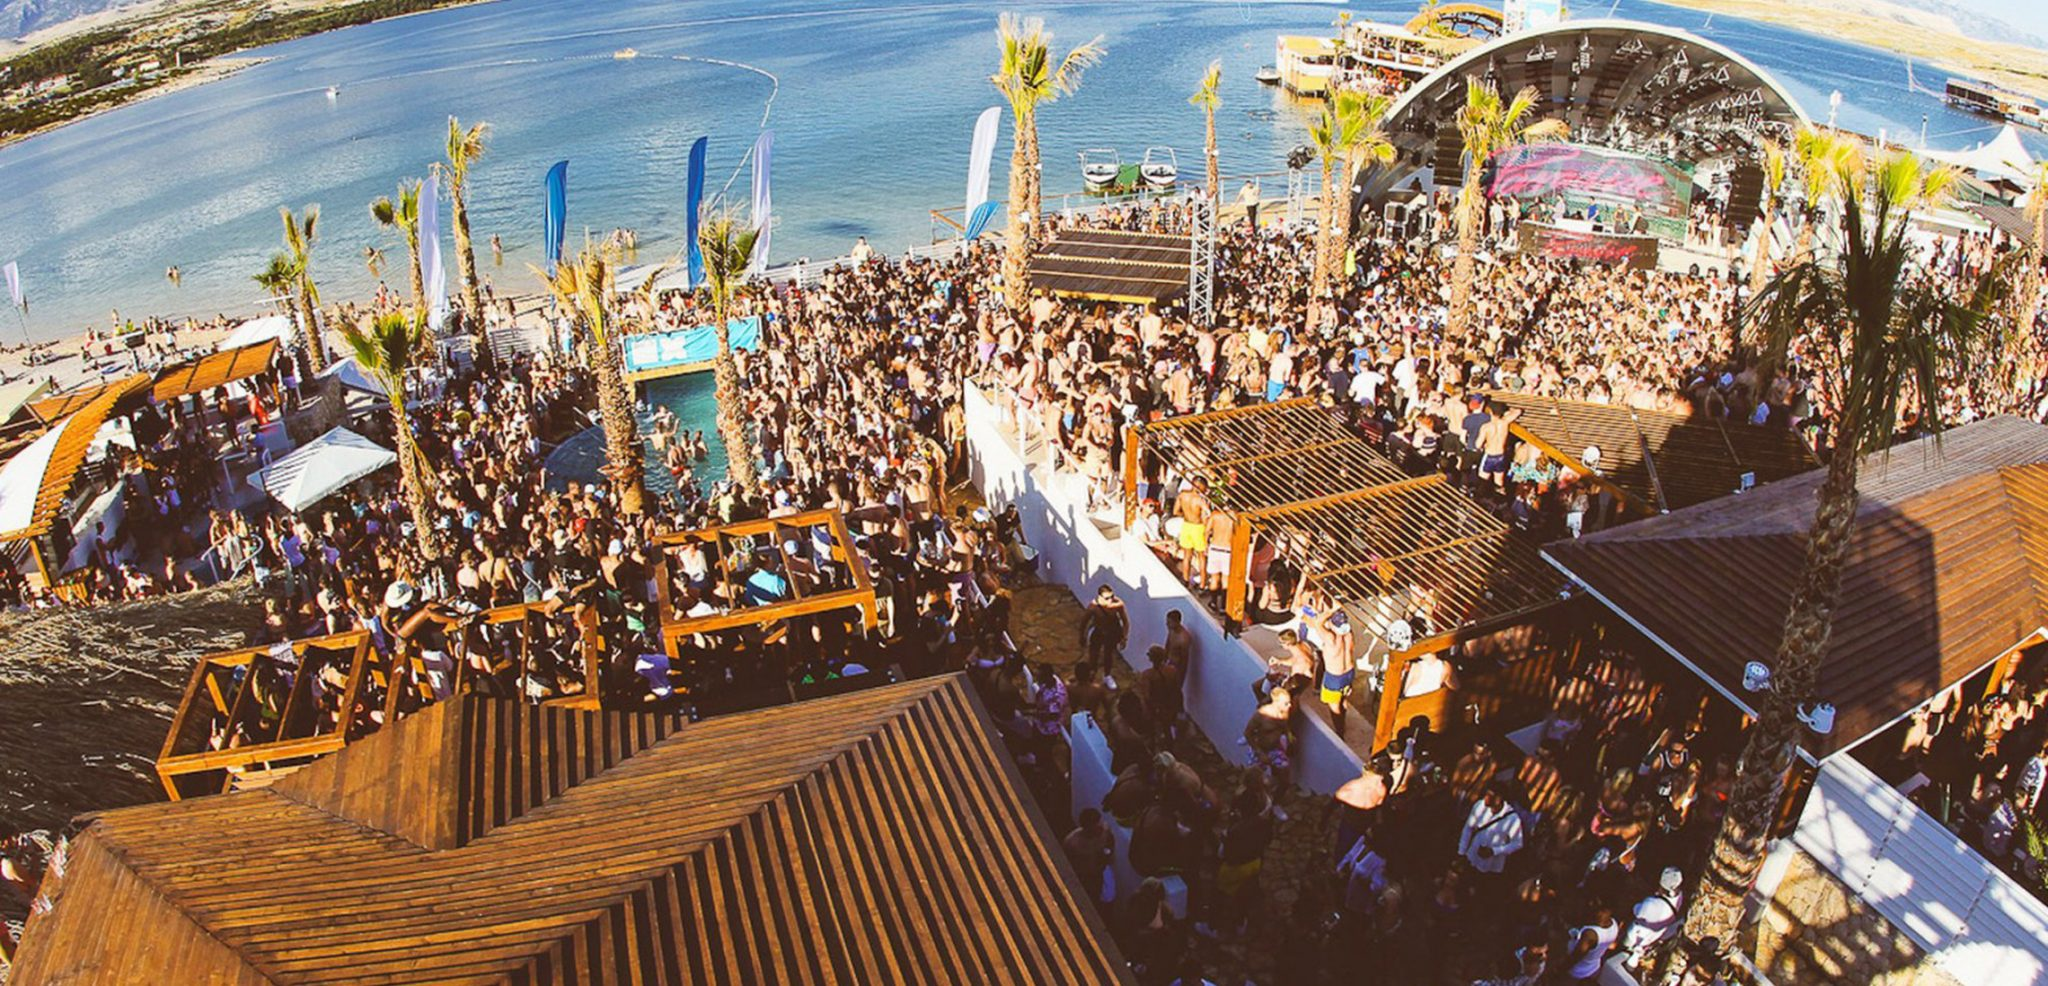 Hideout is expected to sell out fast, organisers urge fans to register to not miss out.